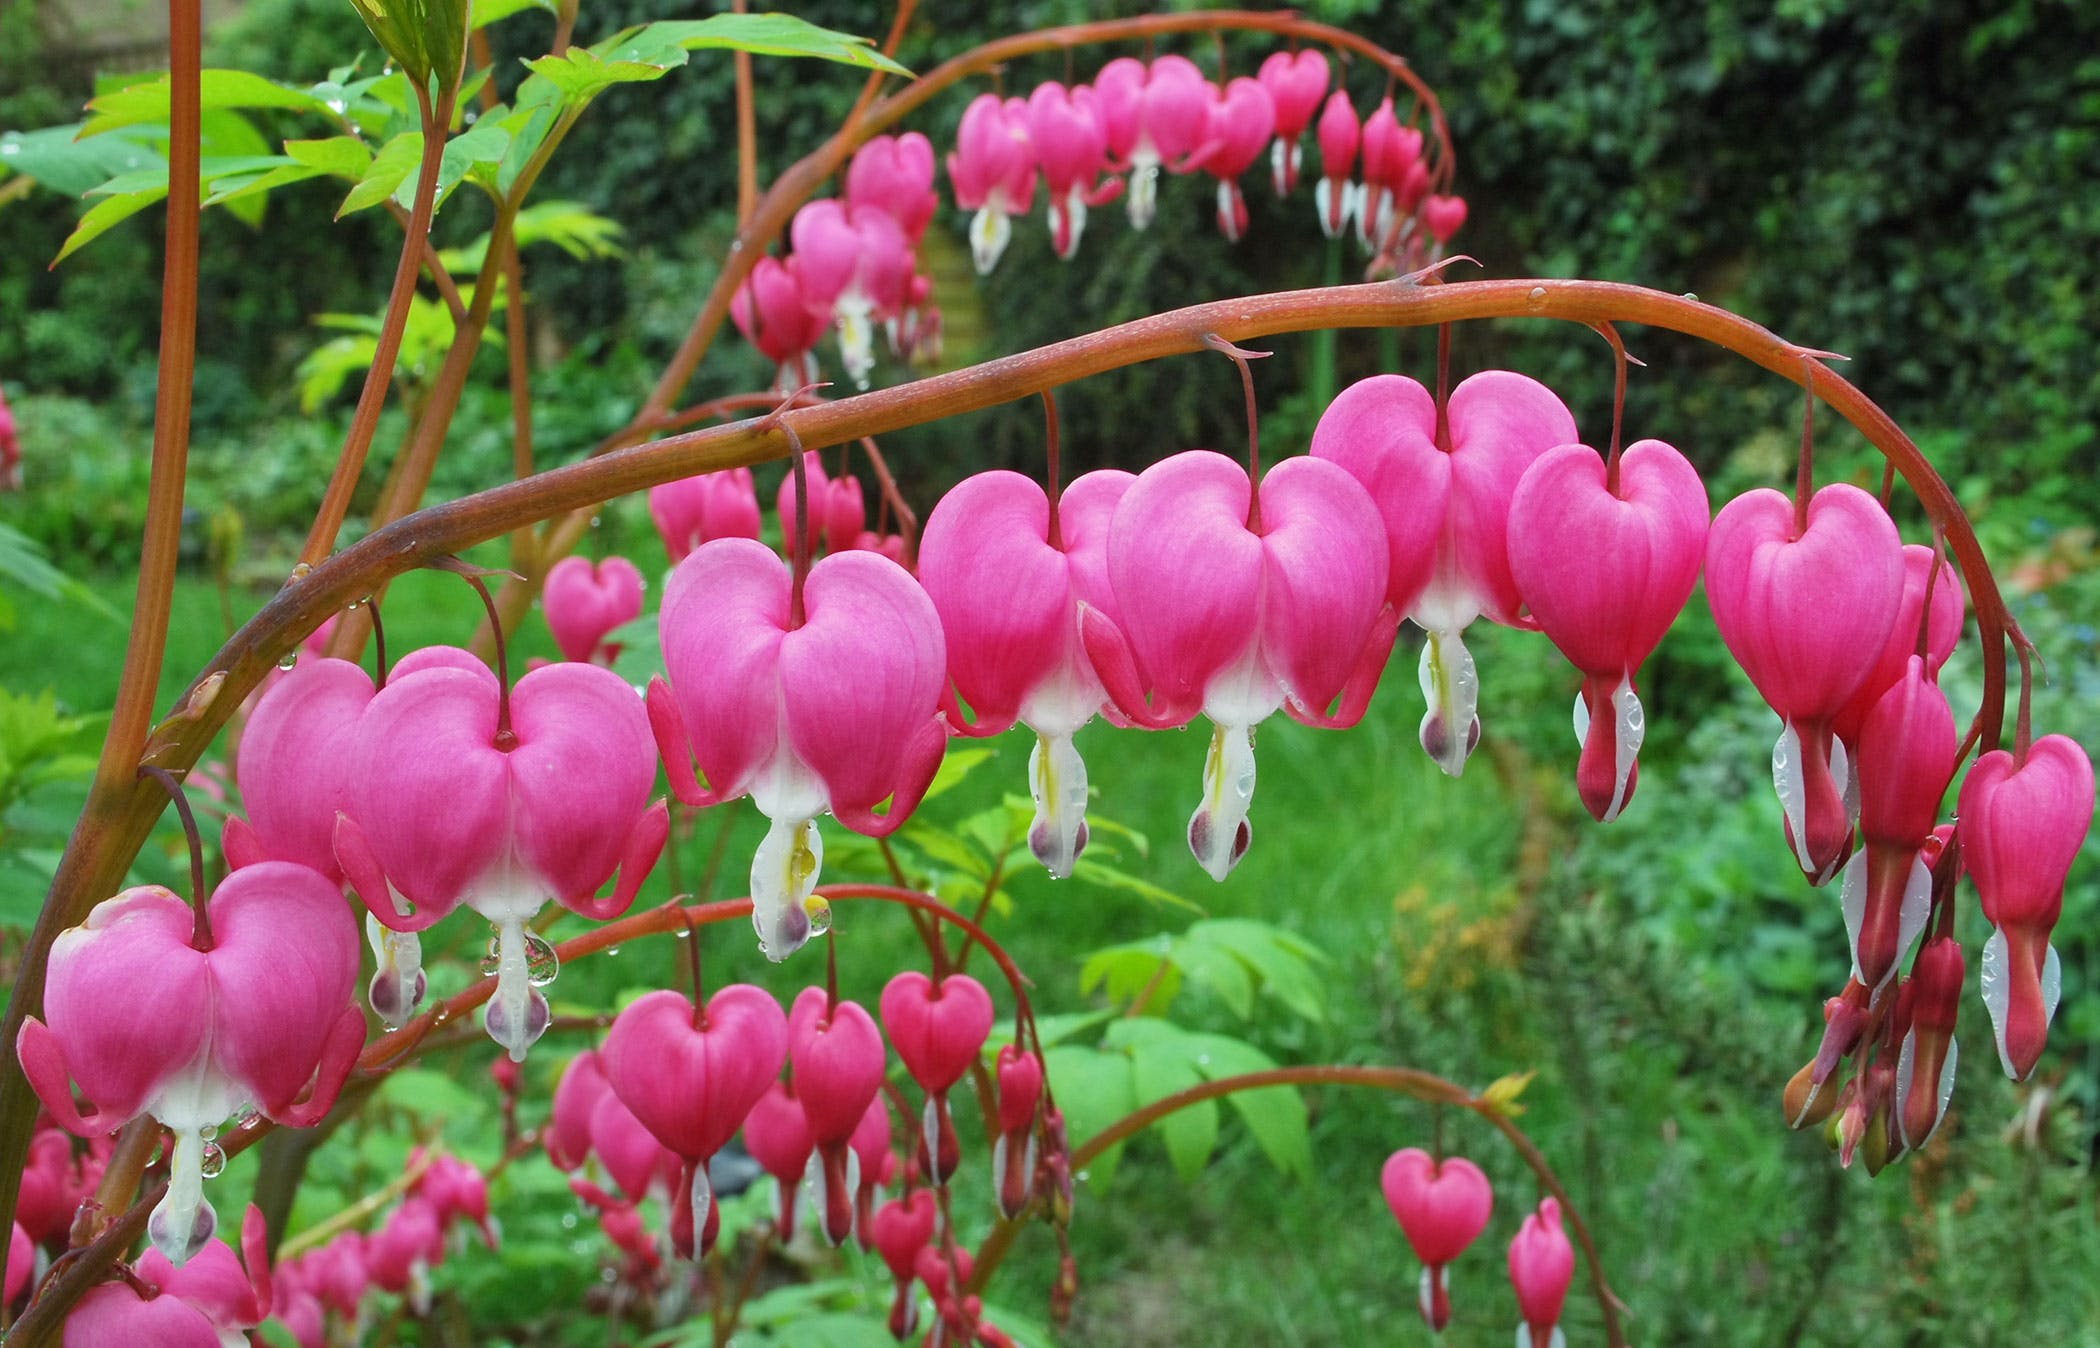 Bleeding Hearts Poisoning In Dogs Symptoms Causes Diagnosis